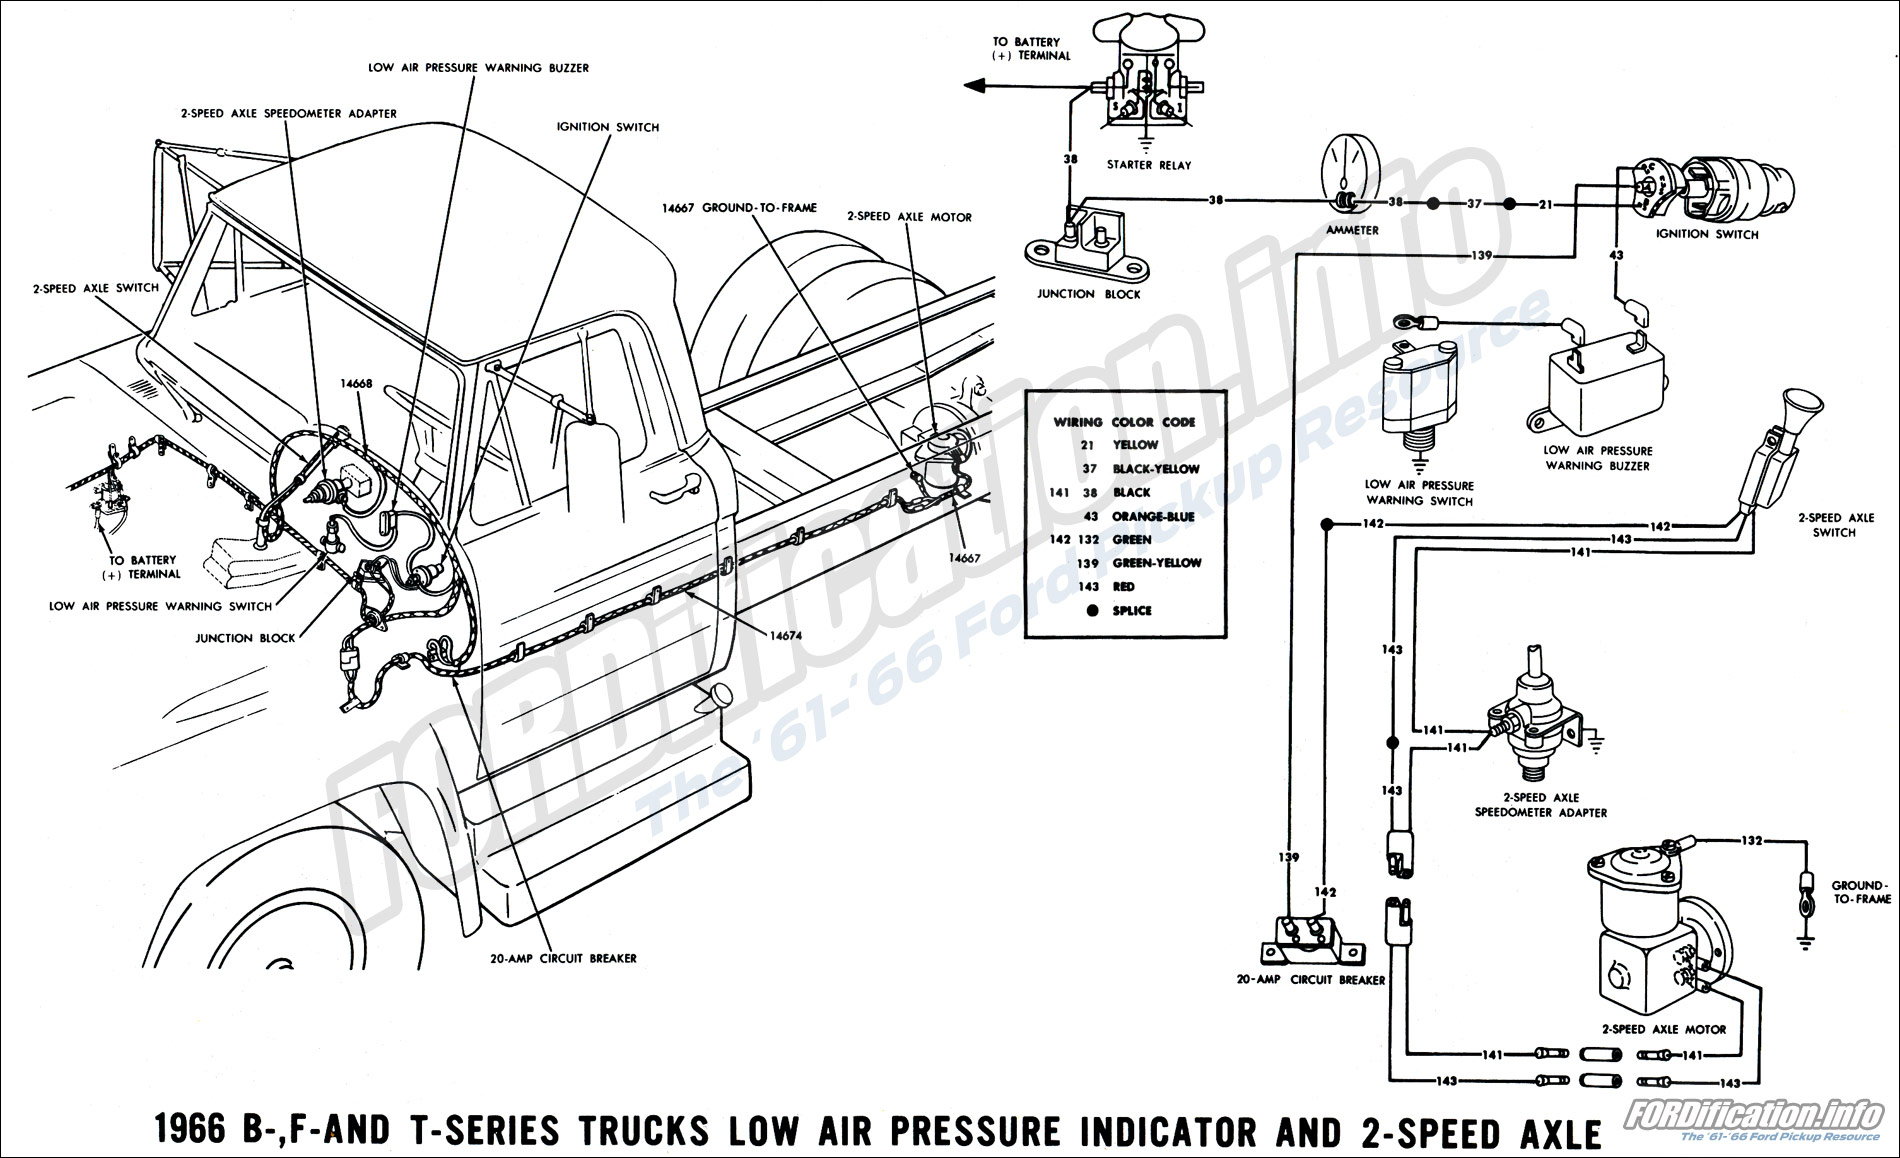 wiring diagram for 66 ford f100 wiring schematic for 1963 ford f100 #9